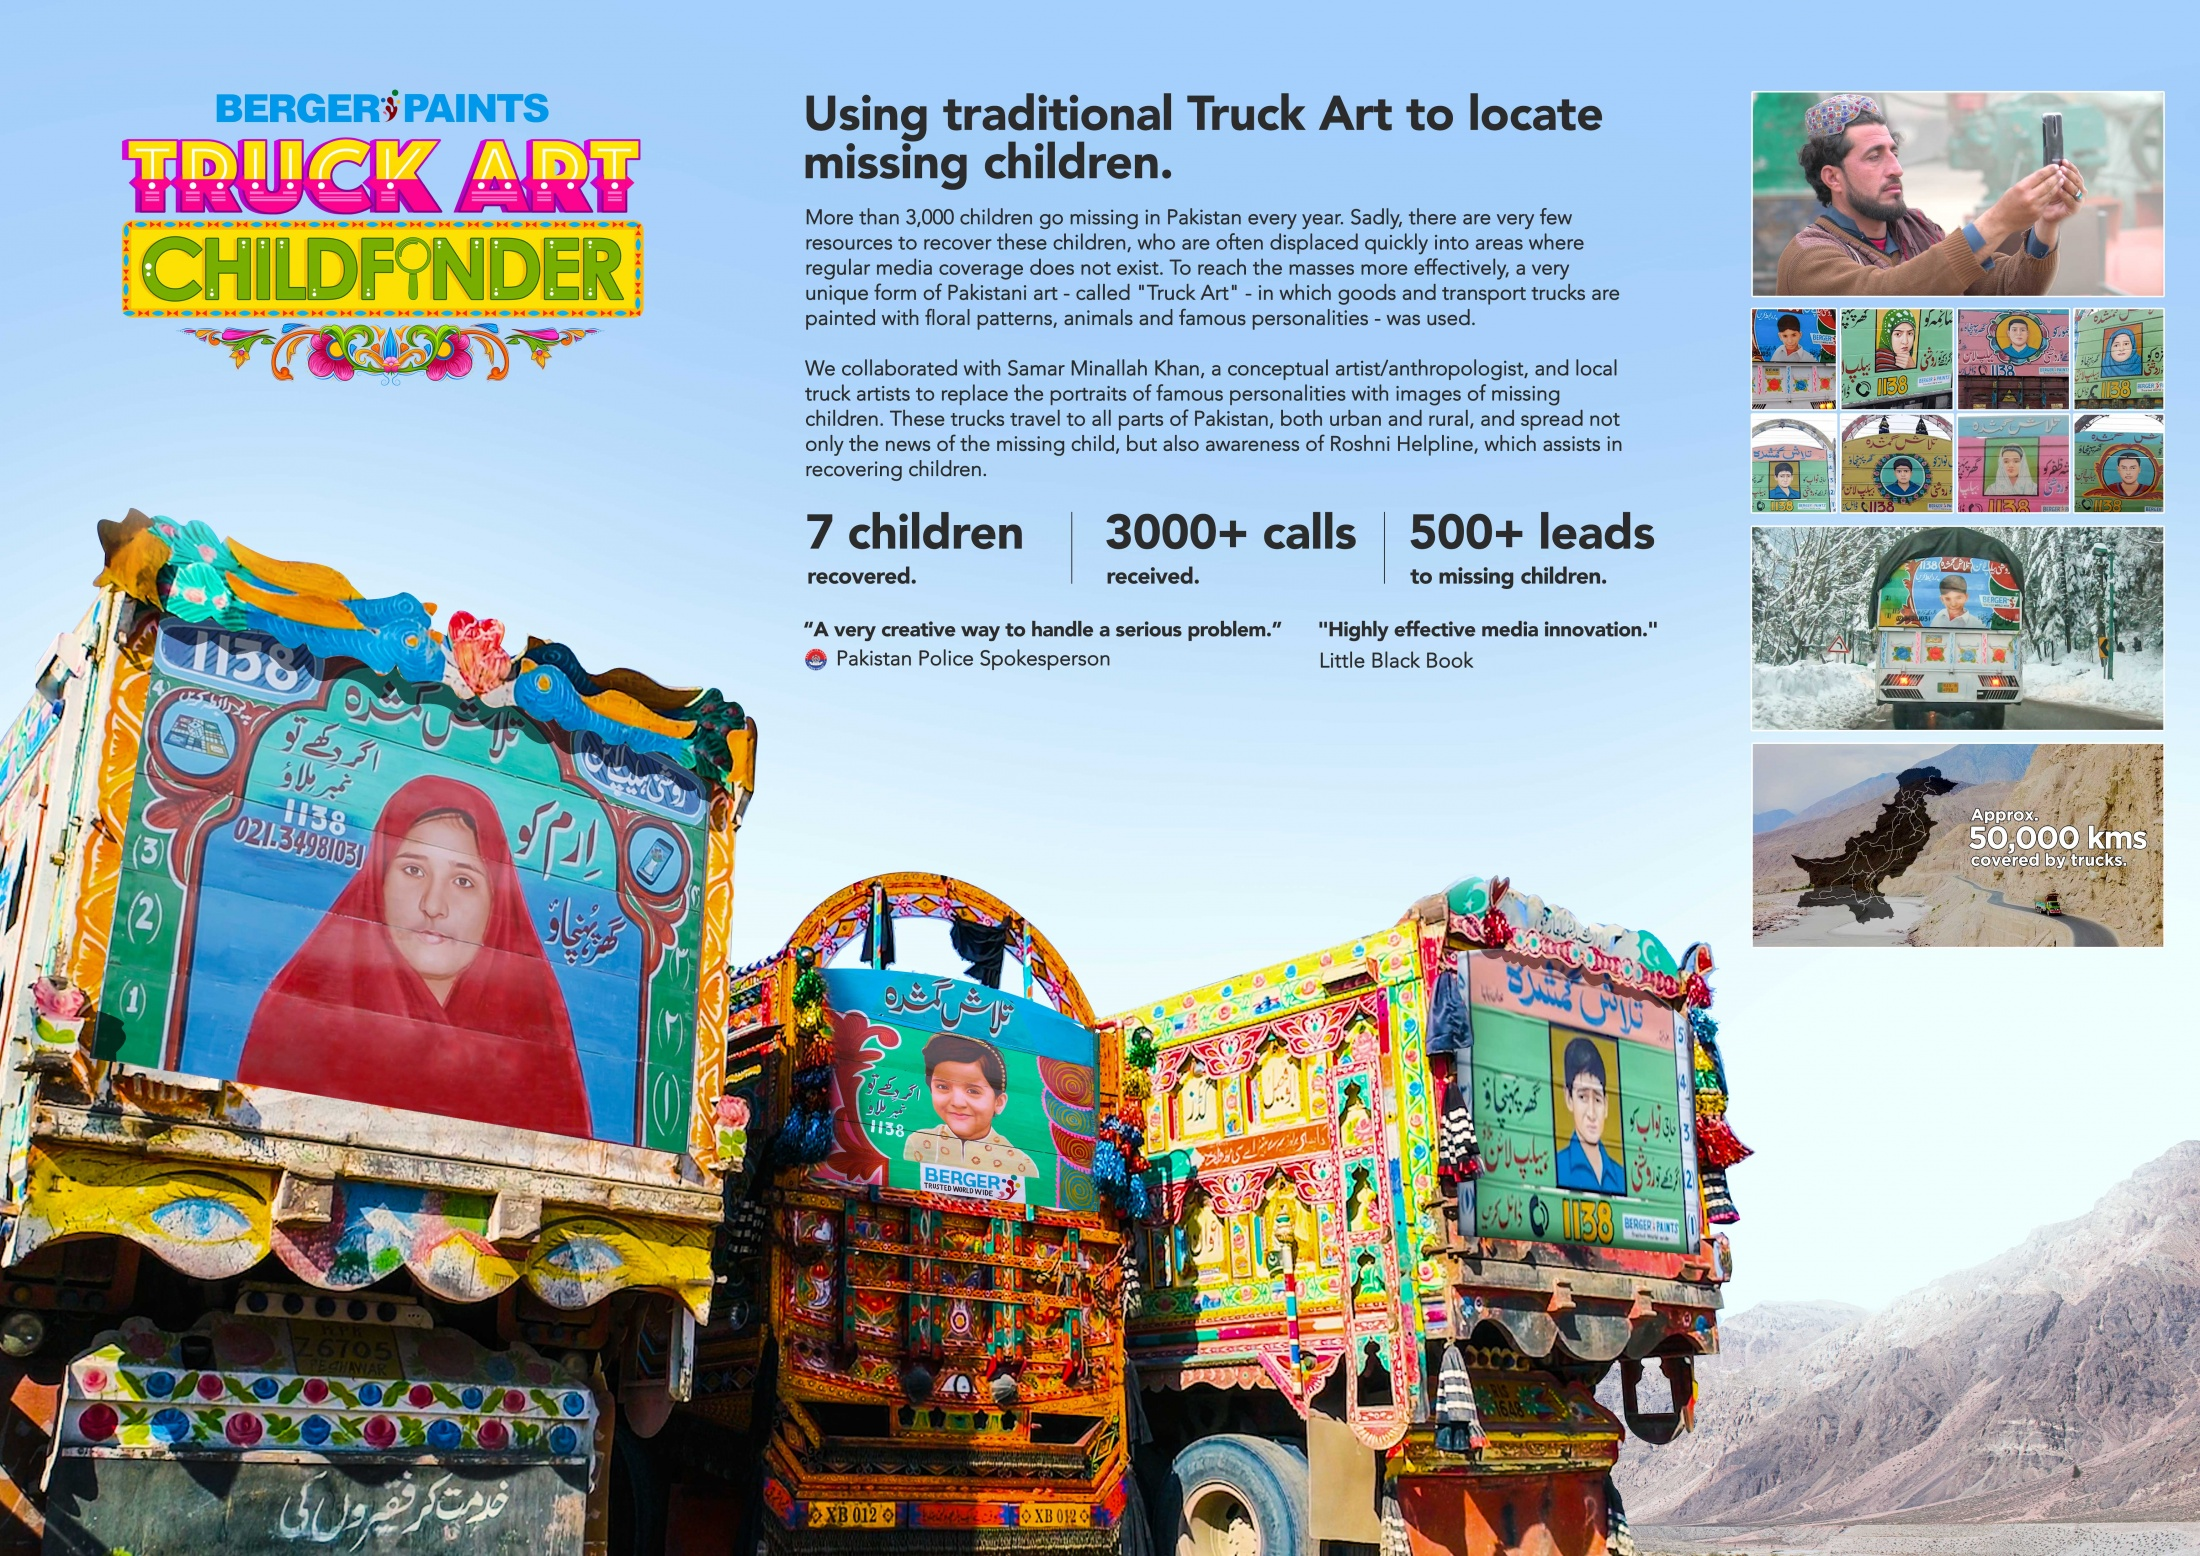 Image Media for Truck Art Childfinder